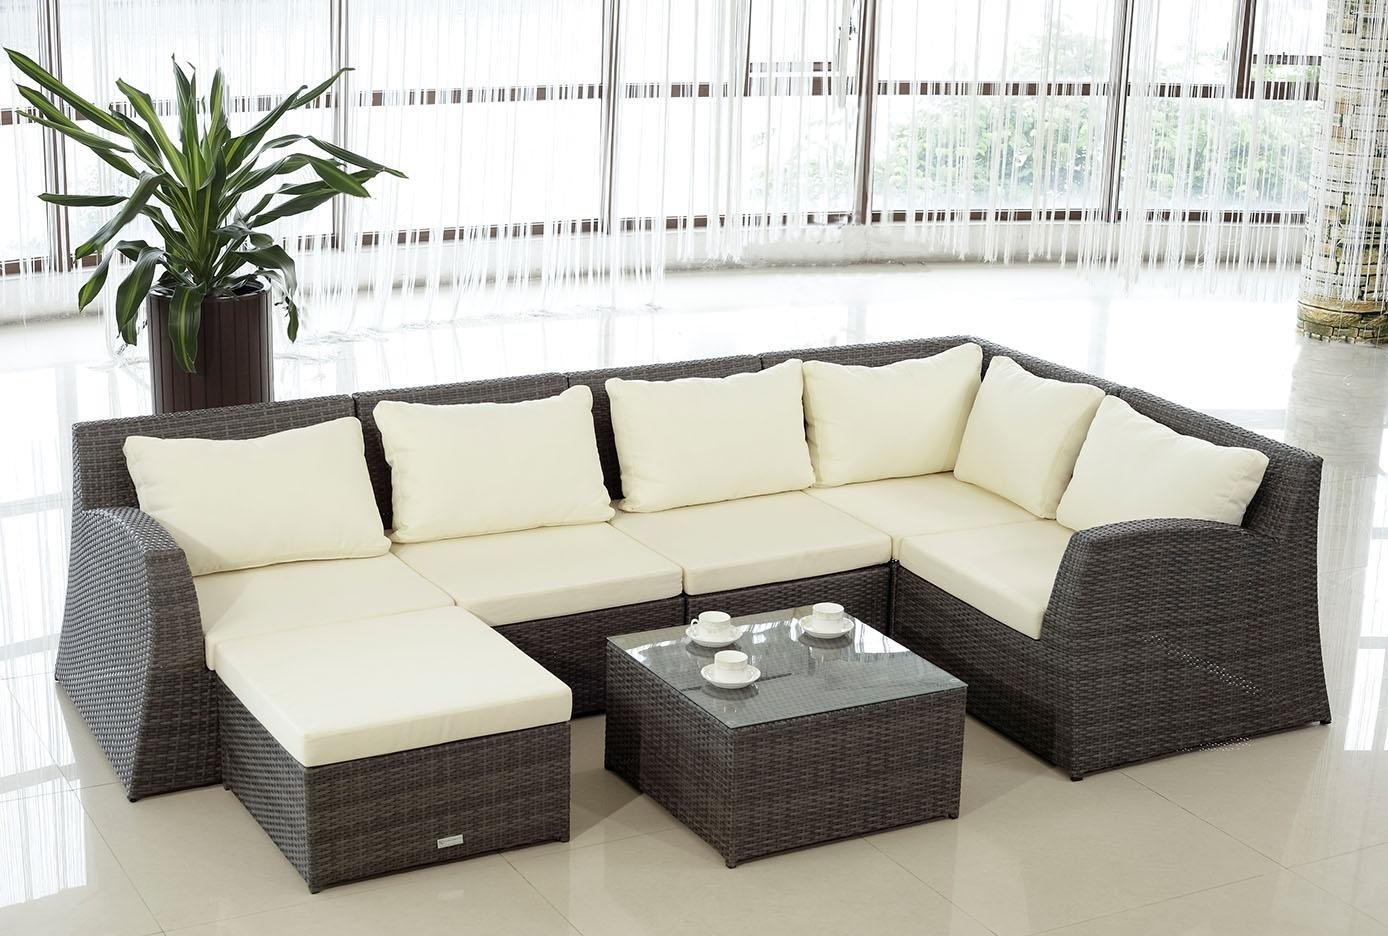 Architectural Design Modern Rattan Outdoor Furniture Architecture Throughout Modern Rattan Sofas (Image 1 of 23)